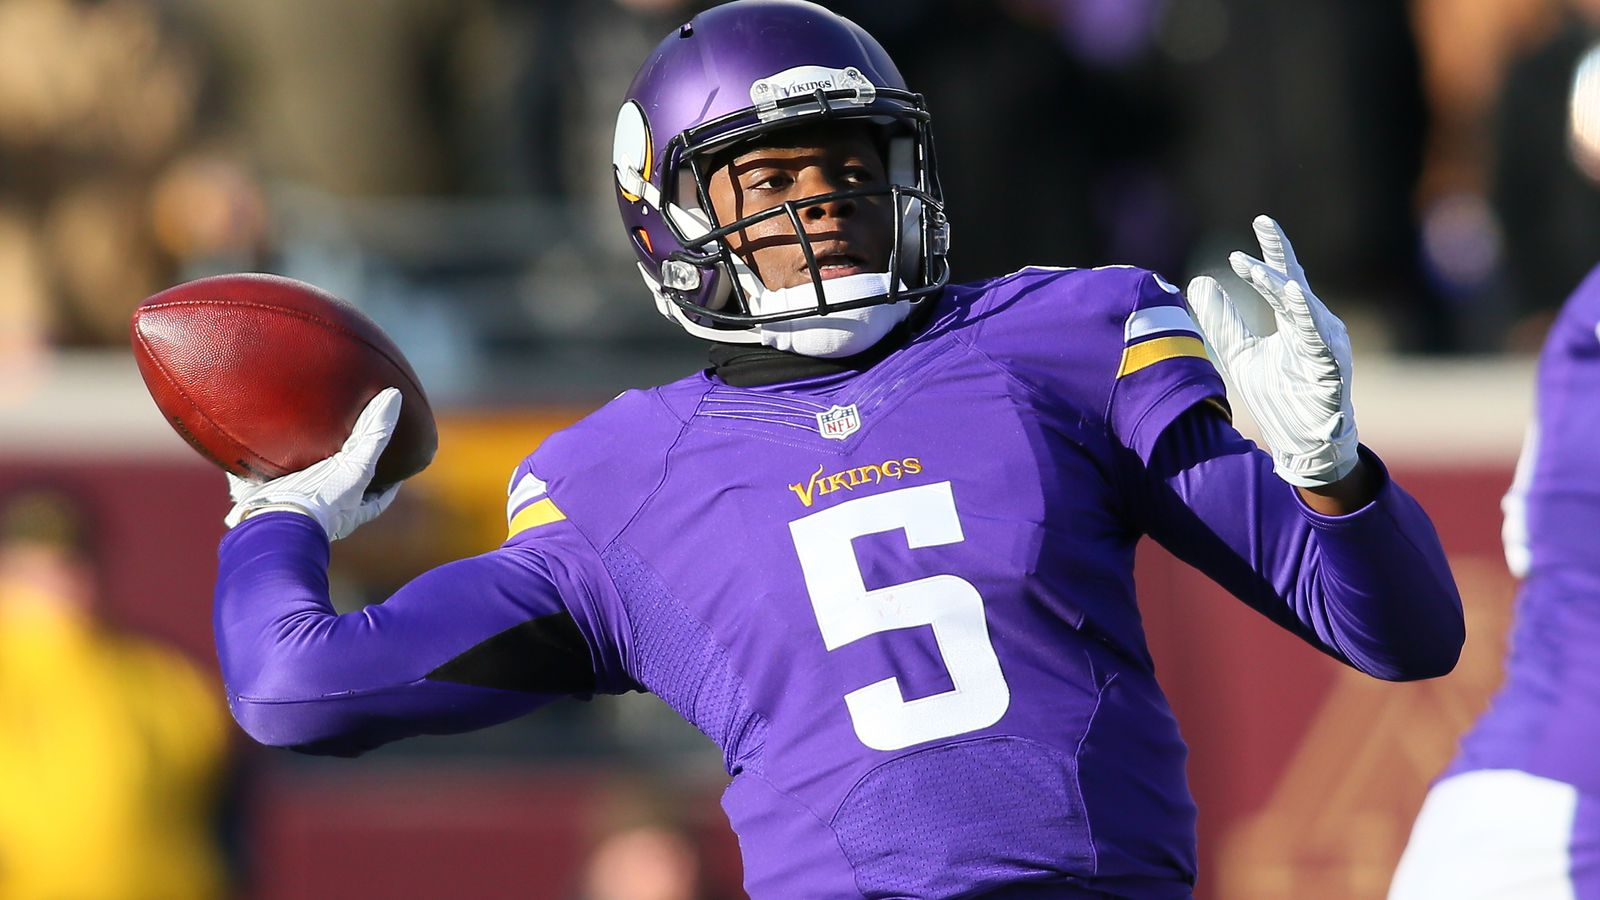 Minnesota Vikings quarterback Teddy Bridgewater sees himself as a starter in 2018